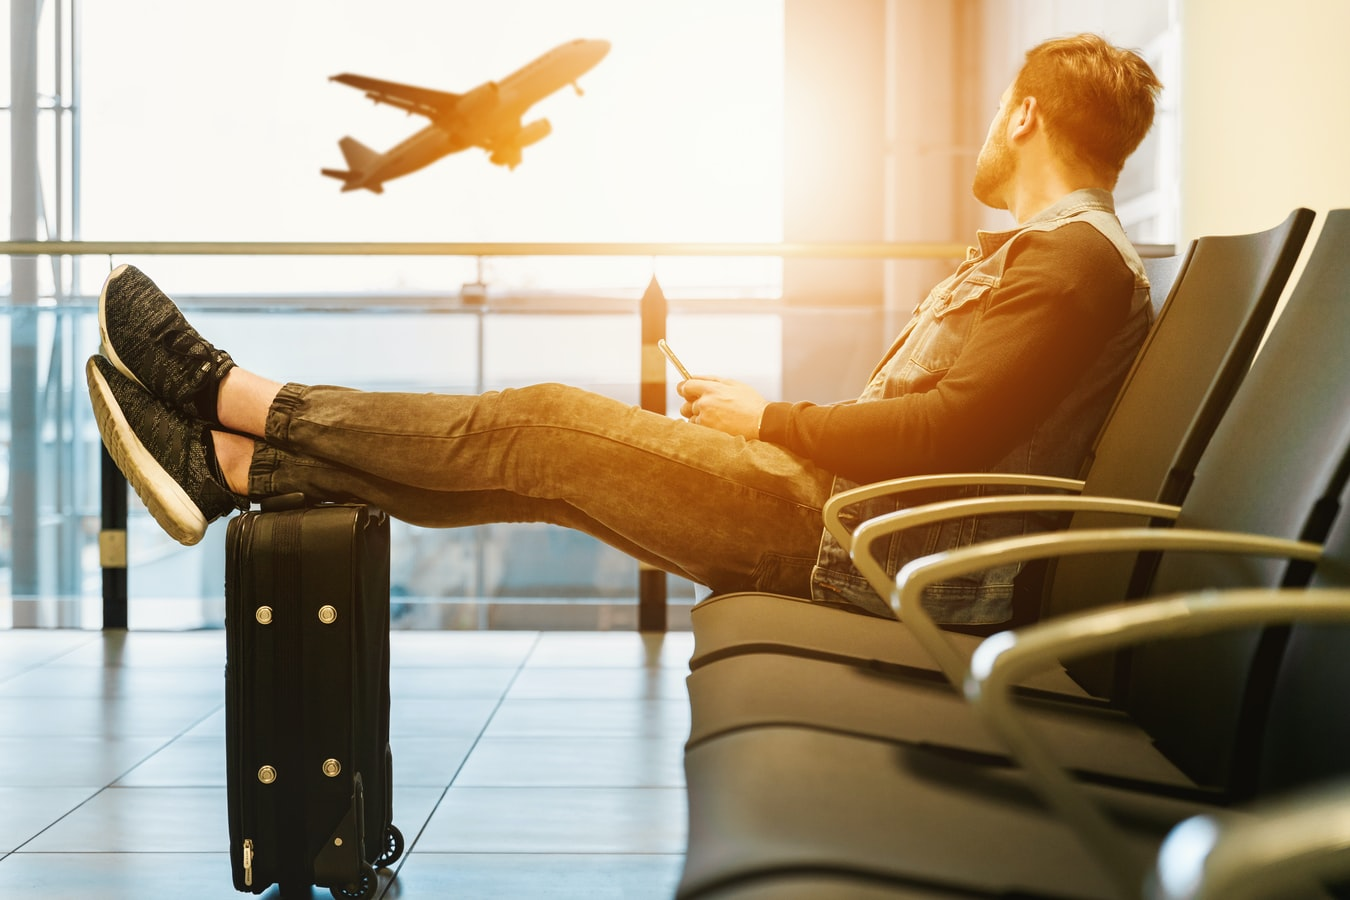 Travelling on a Budget 6 Simple Tips Everyone Needs to Know